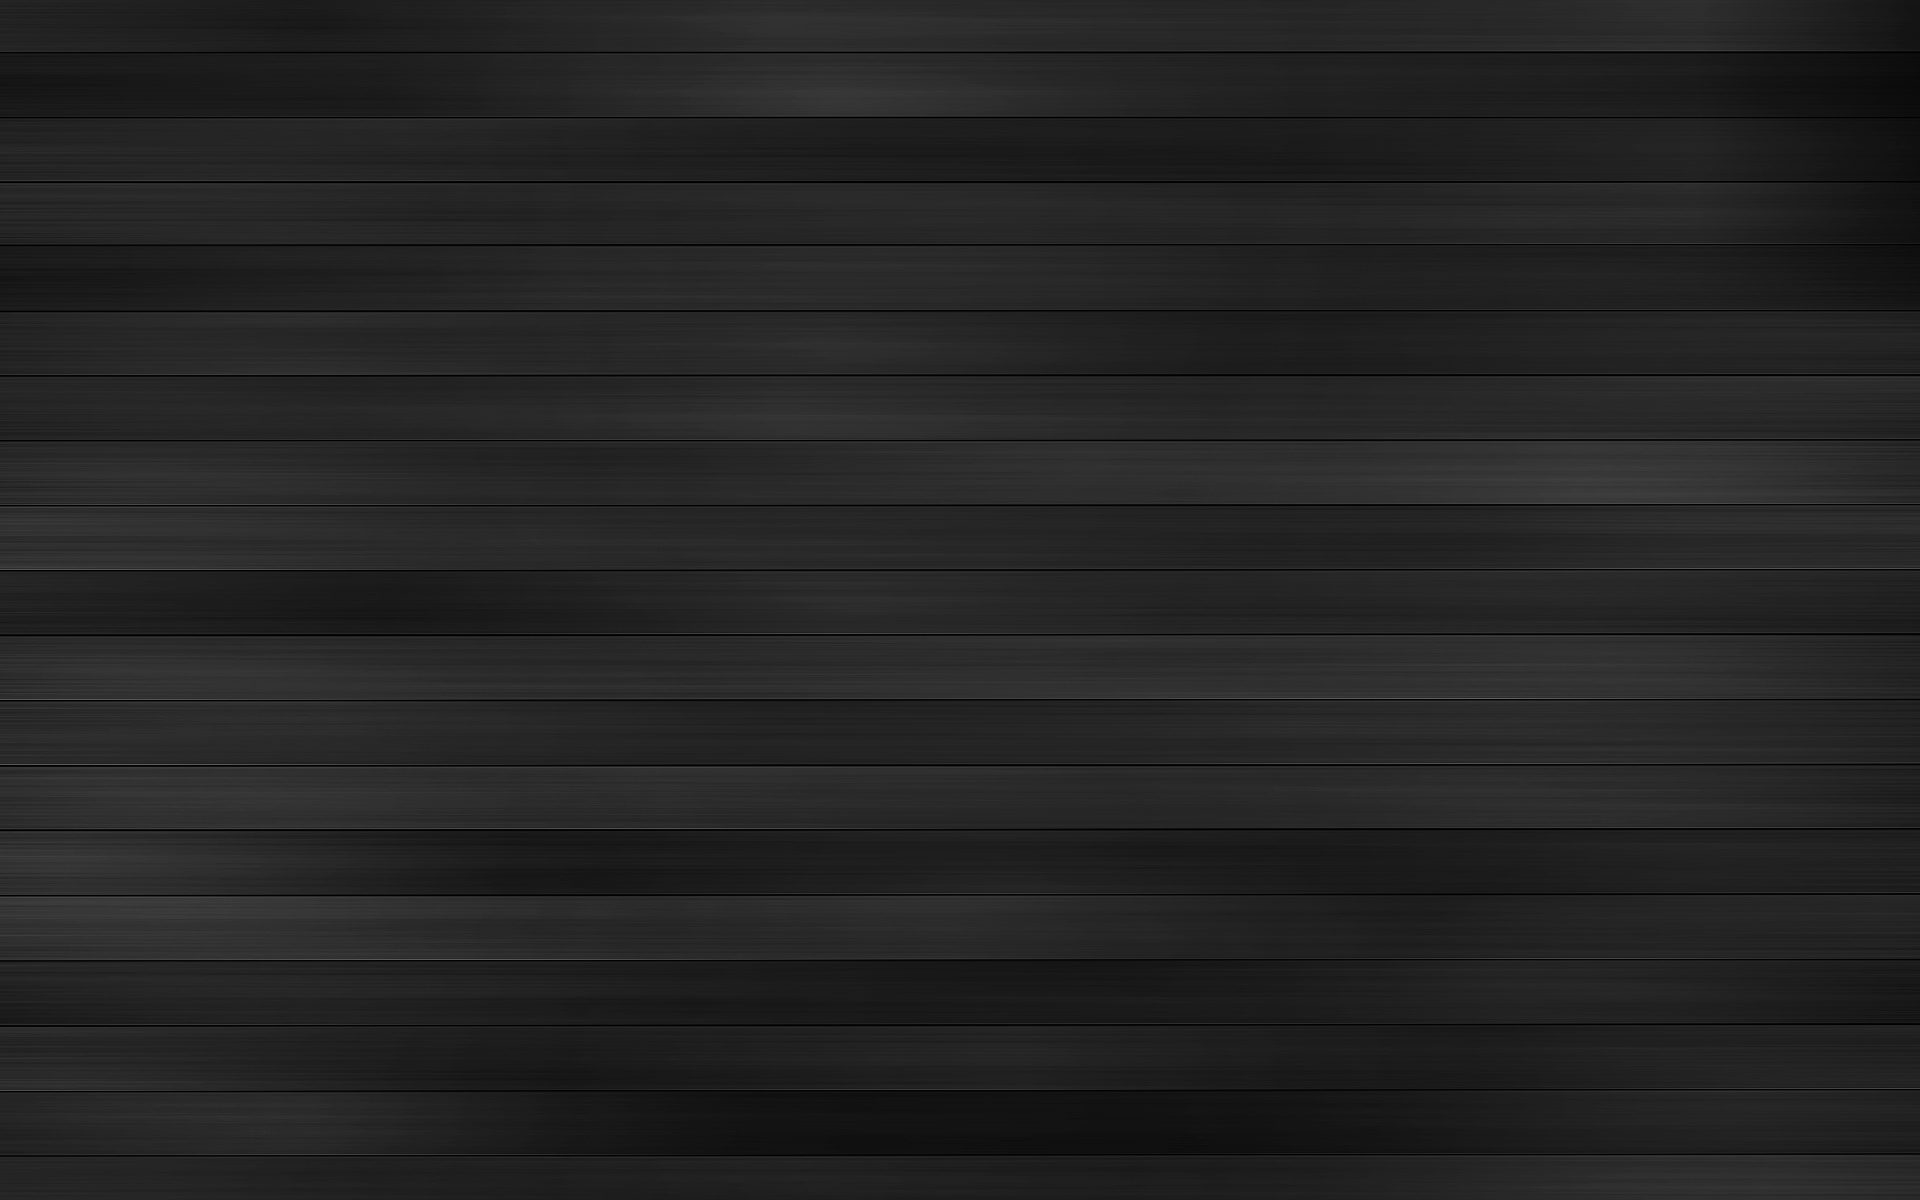 Black Textures Wood Panels Wallpaper 1920x1200 11018